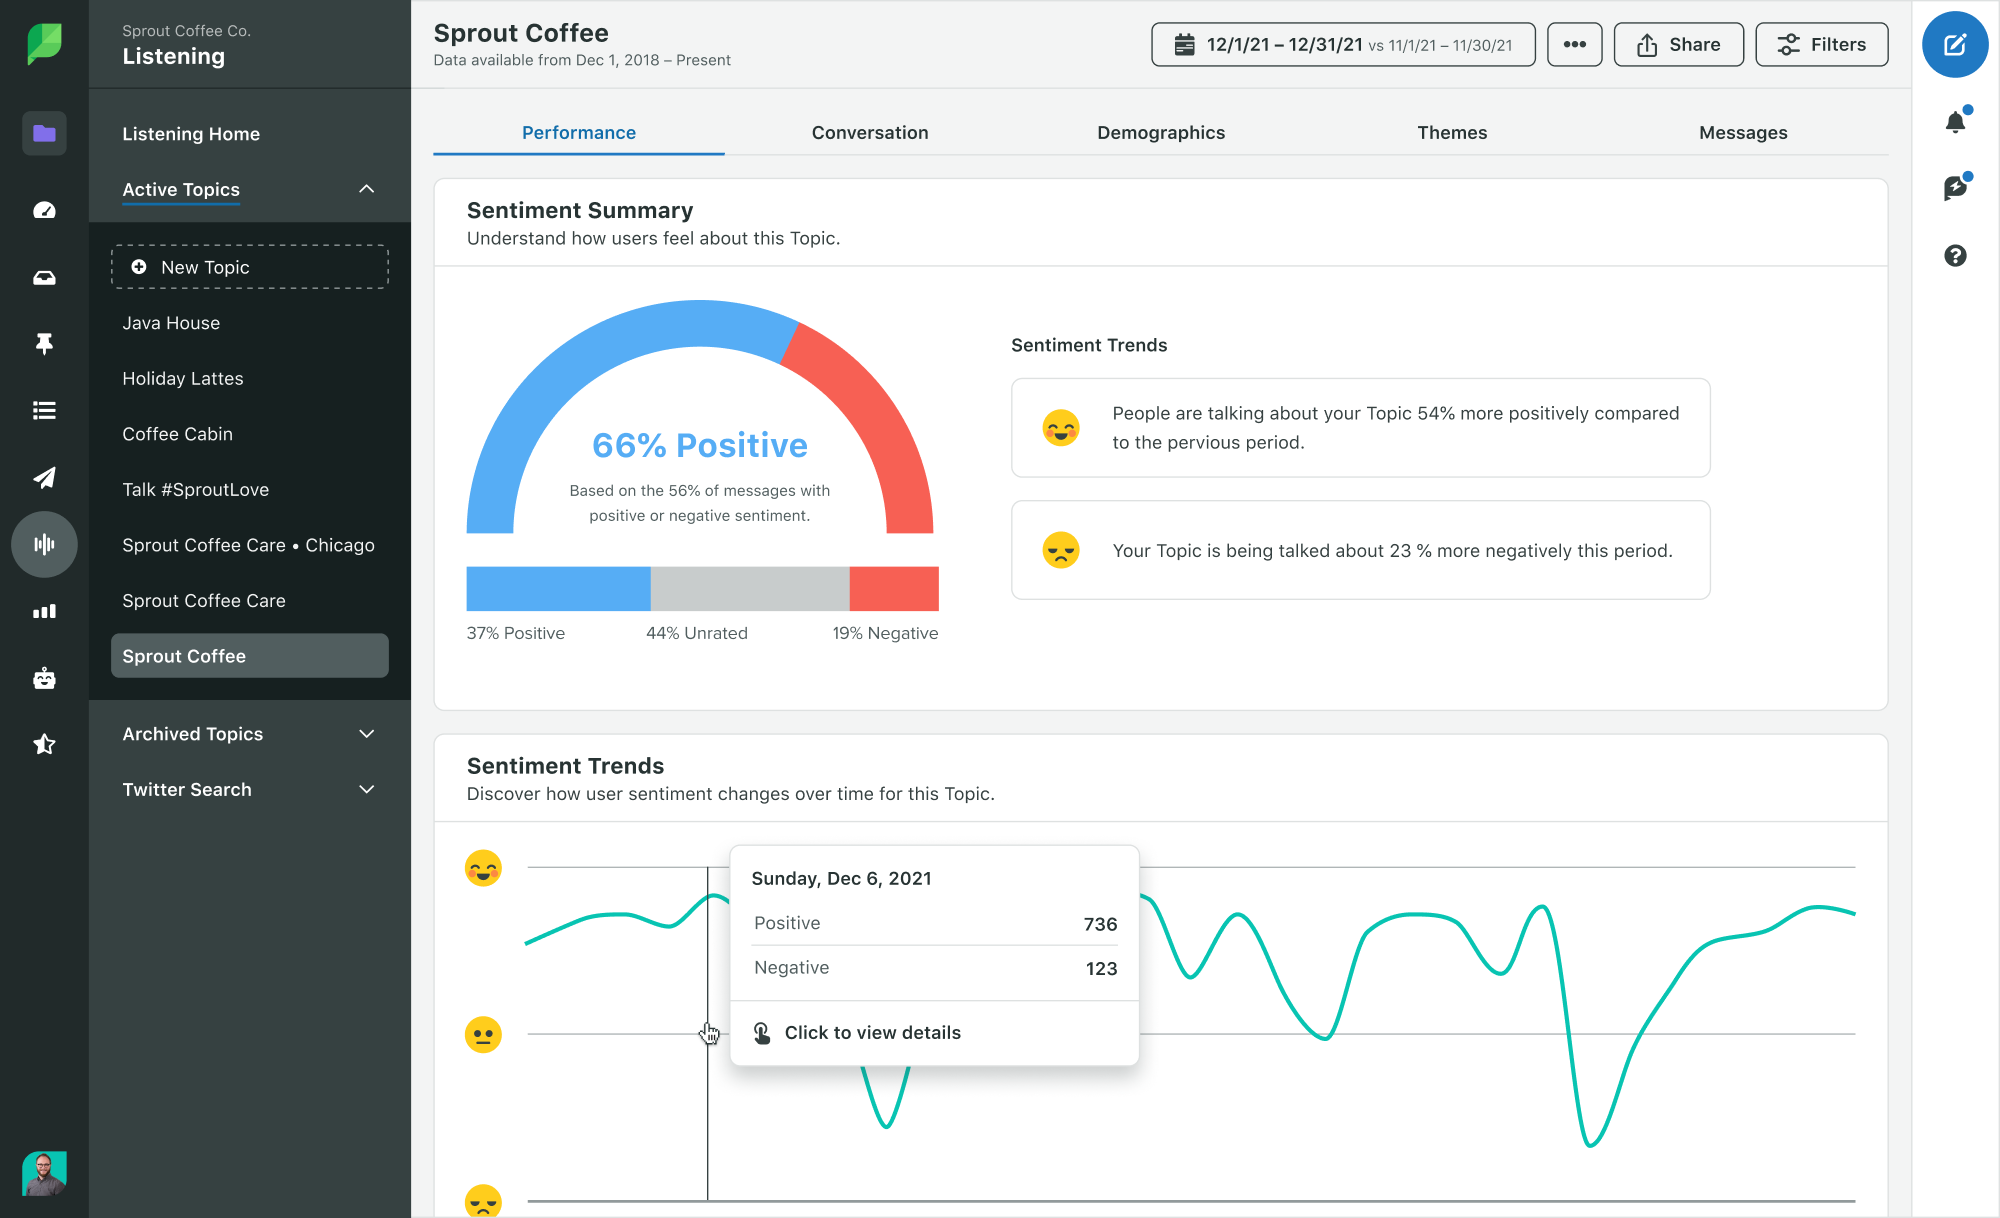 Sprout Social Product Image of Listening Performance Sentiment Summary